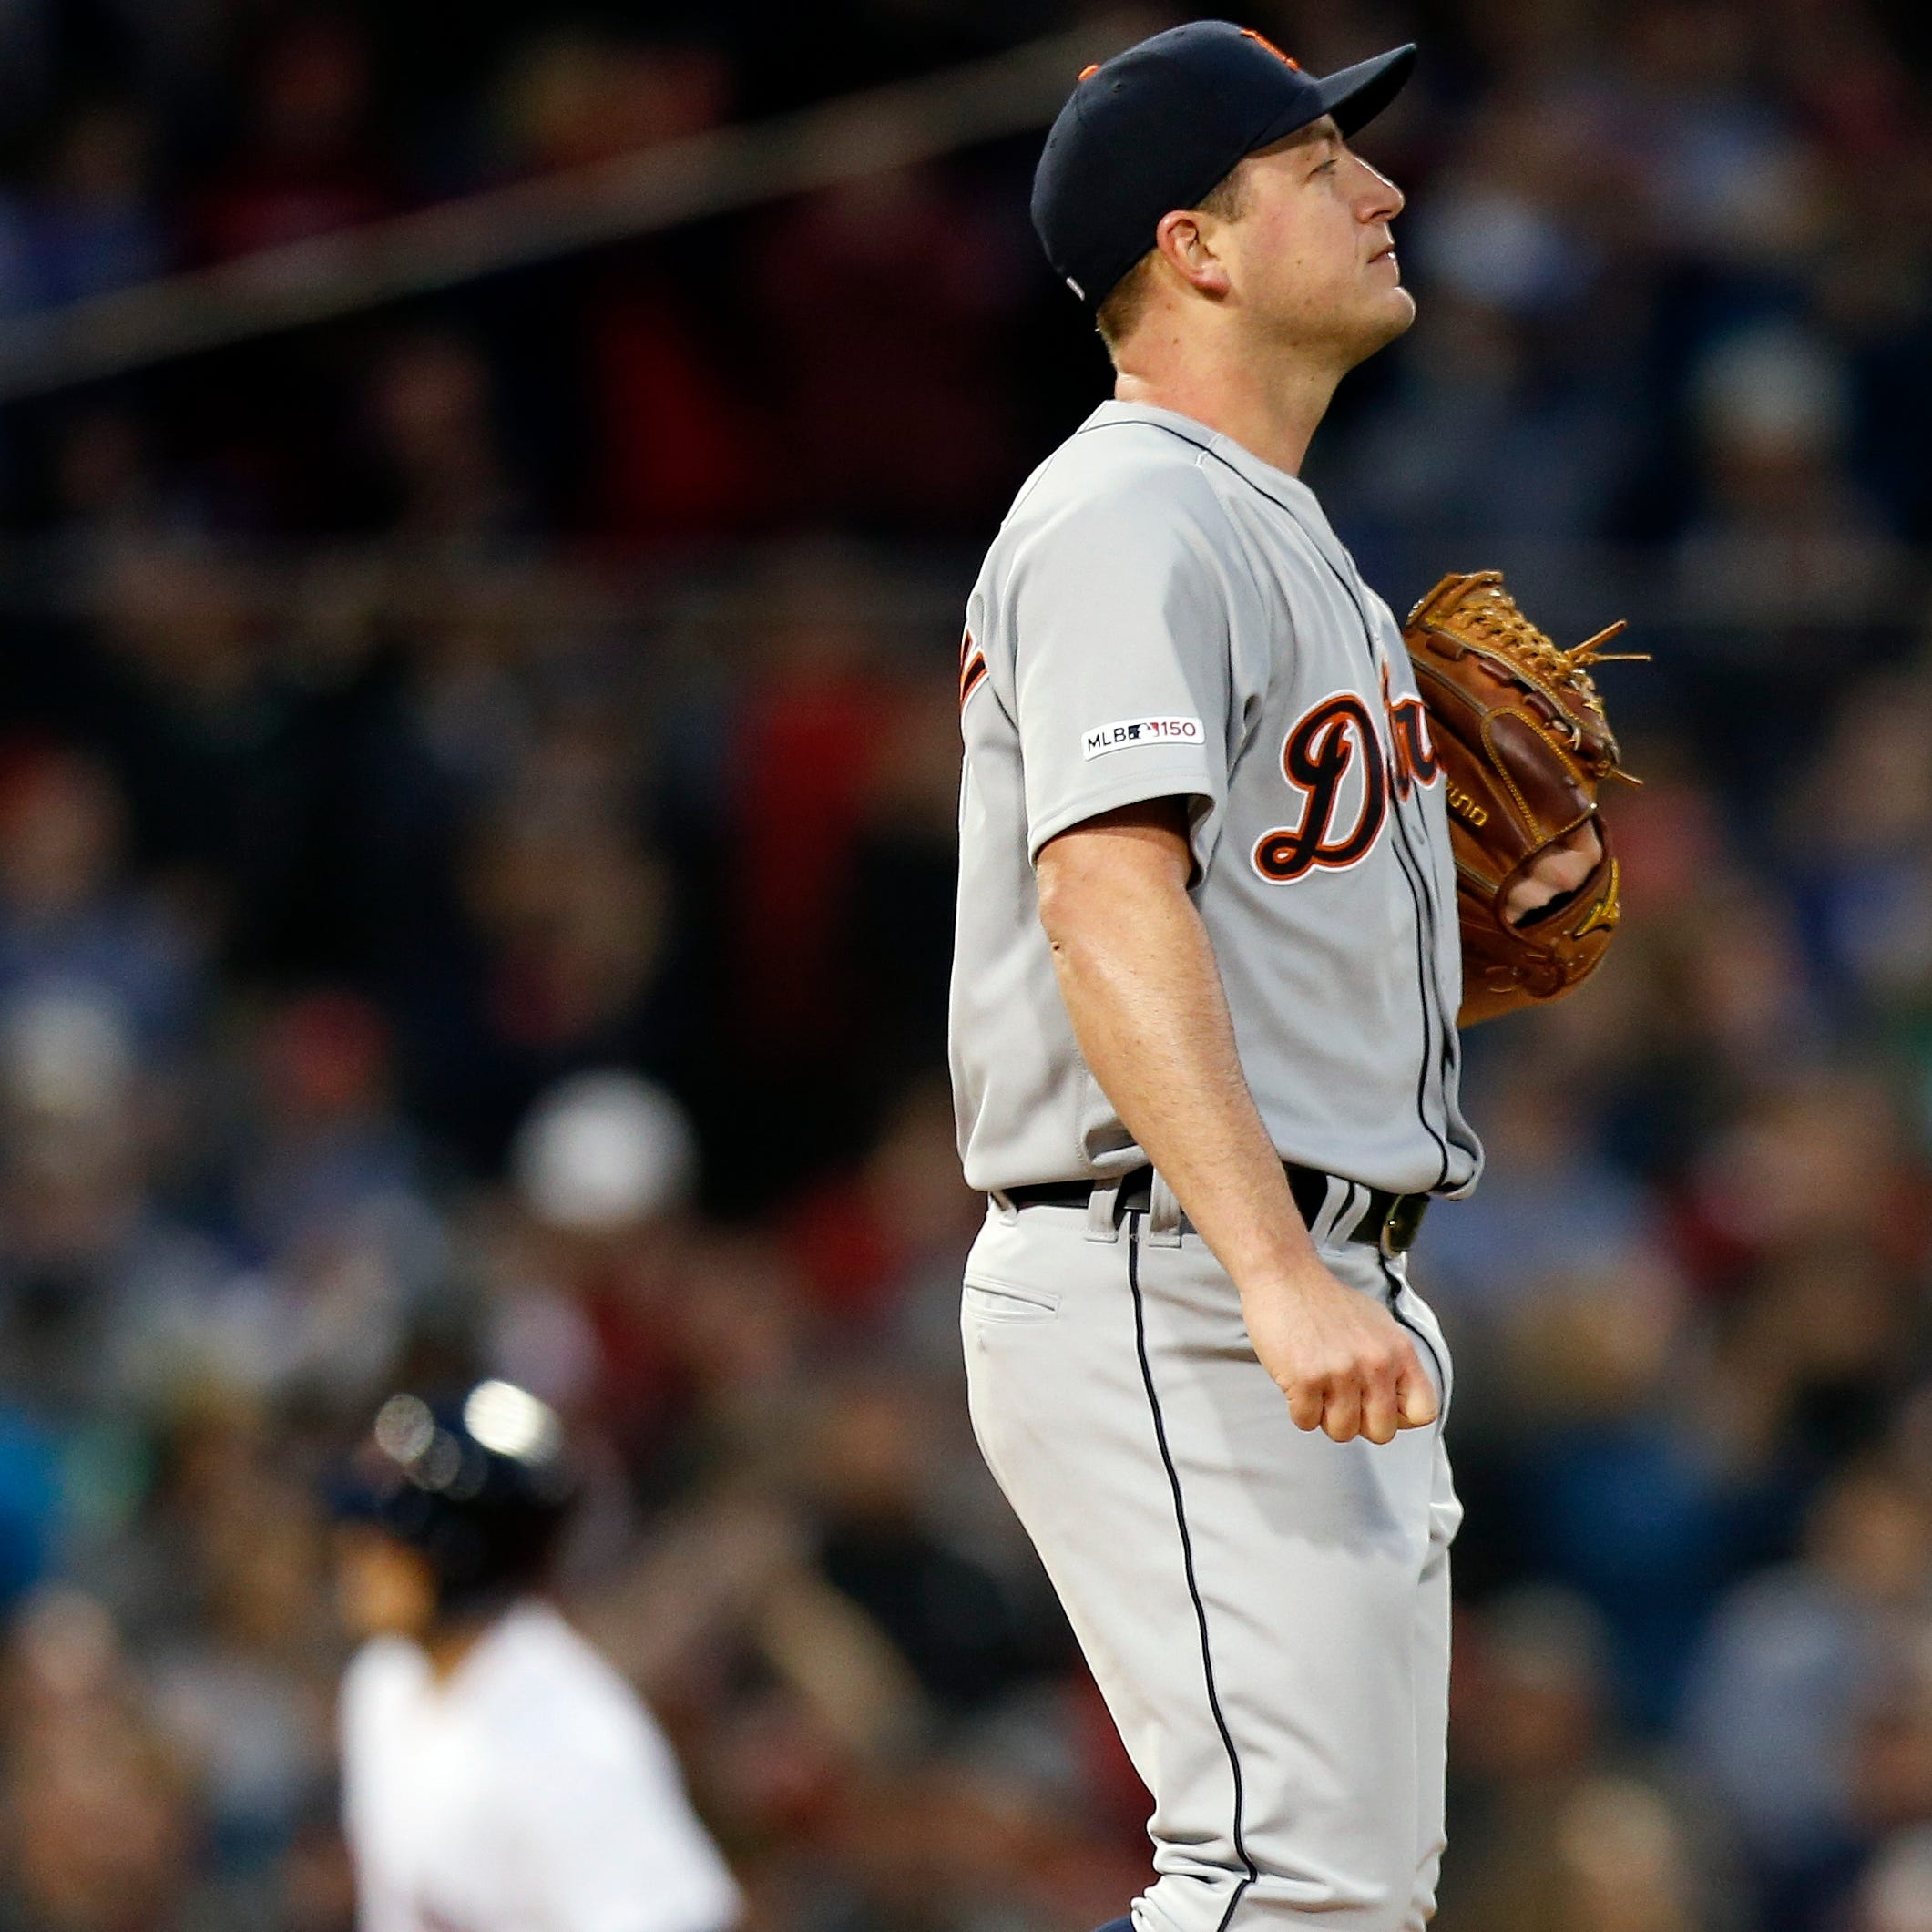 Jordan Zimmermann leaves with elbow pain, Tigers dealt another 'tough blow'